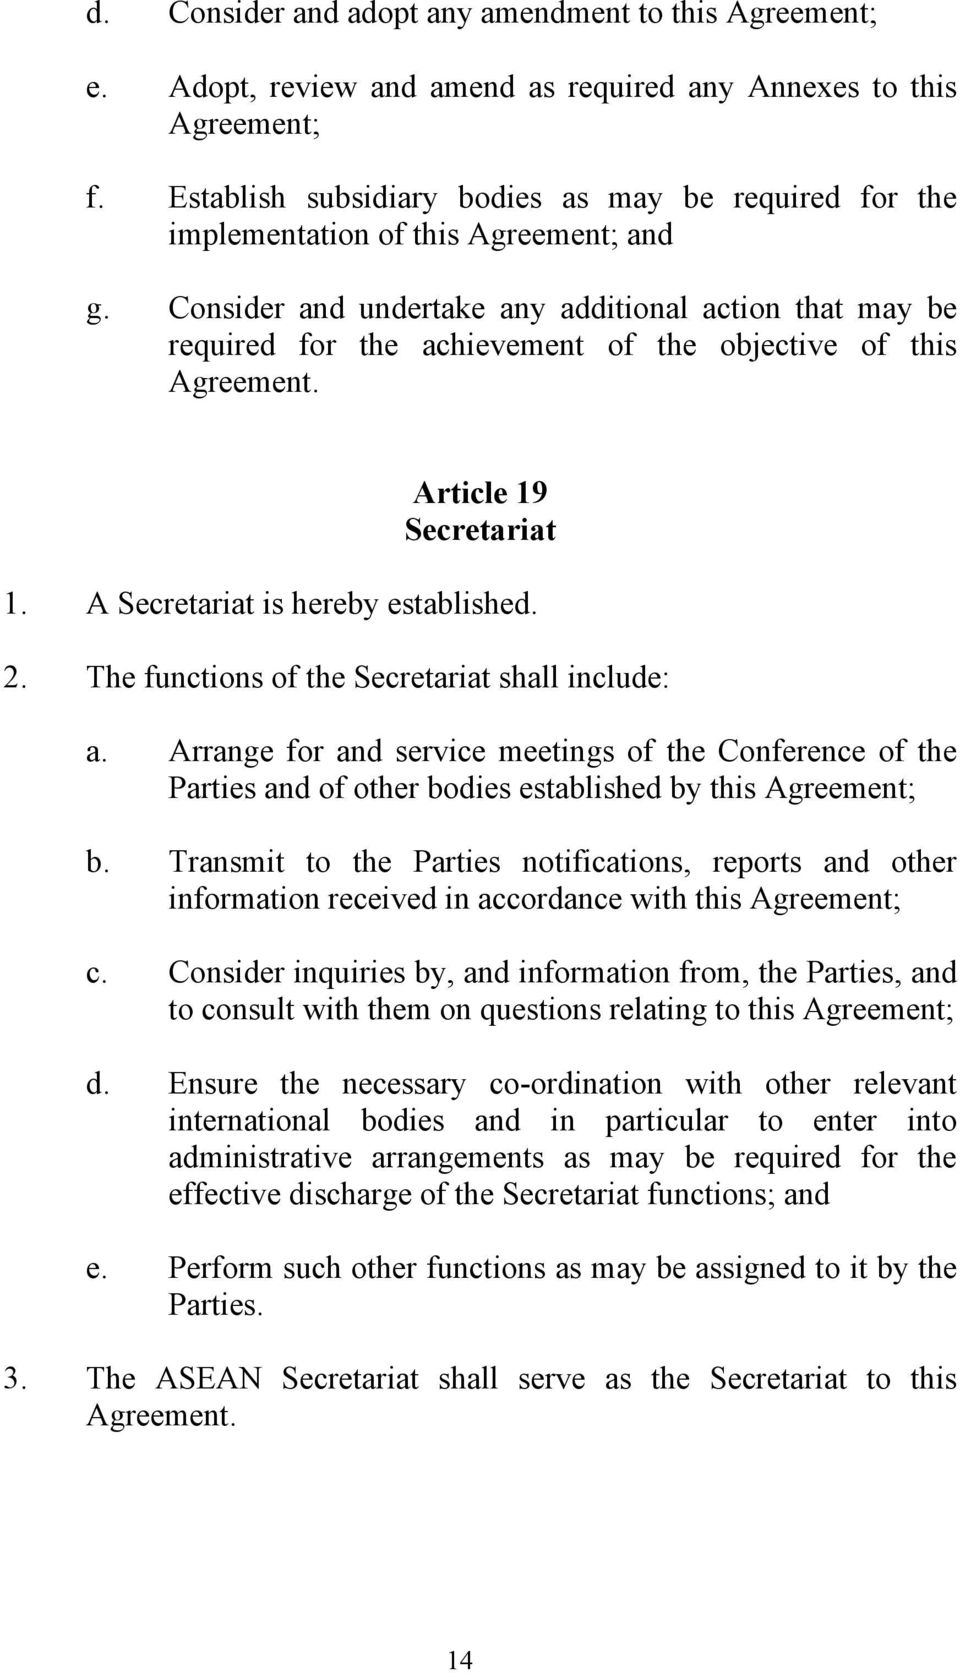 Consider and undertake any additional action that may be required for the achievement of the objective of this Agreement. Article 19 Secretariat 1. A Secretariat is hereby established. 2.